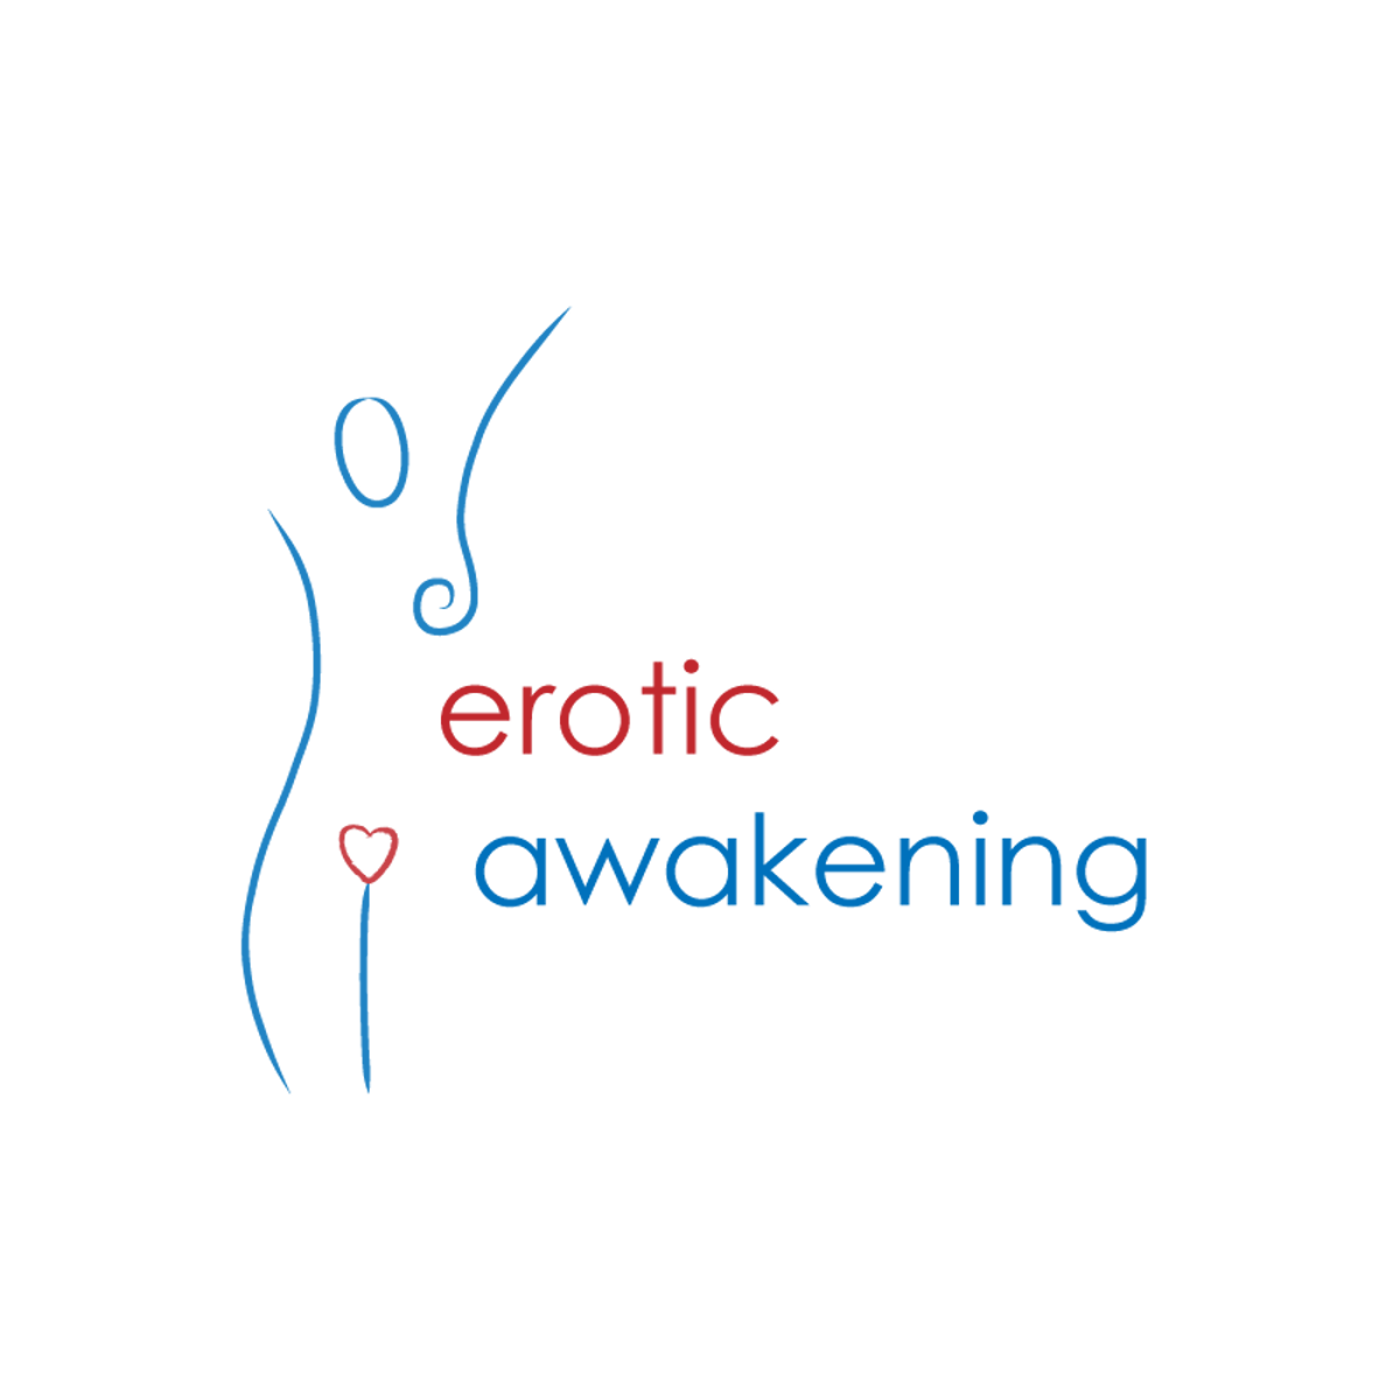 Erotic Awakening Podcast - EA477 - Kinky parents and 10 years of podcasting